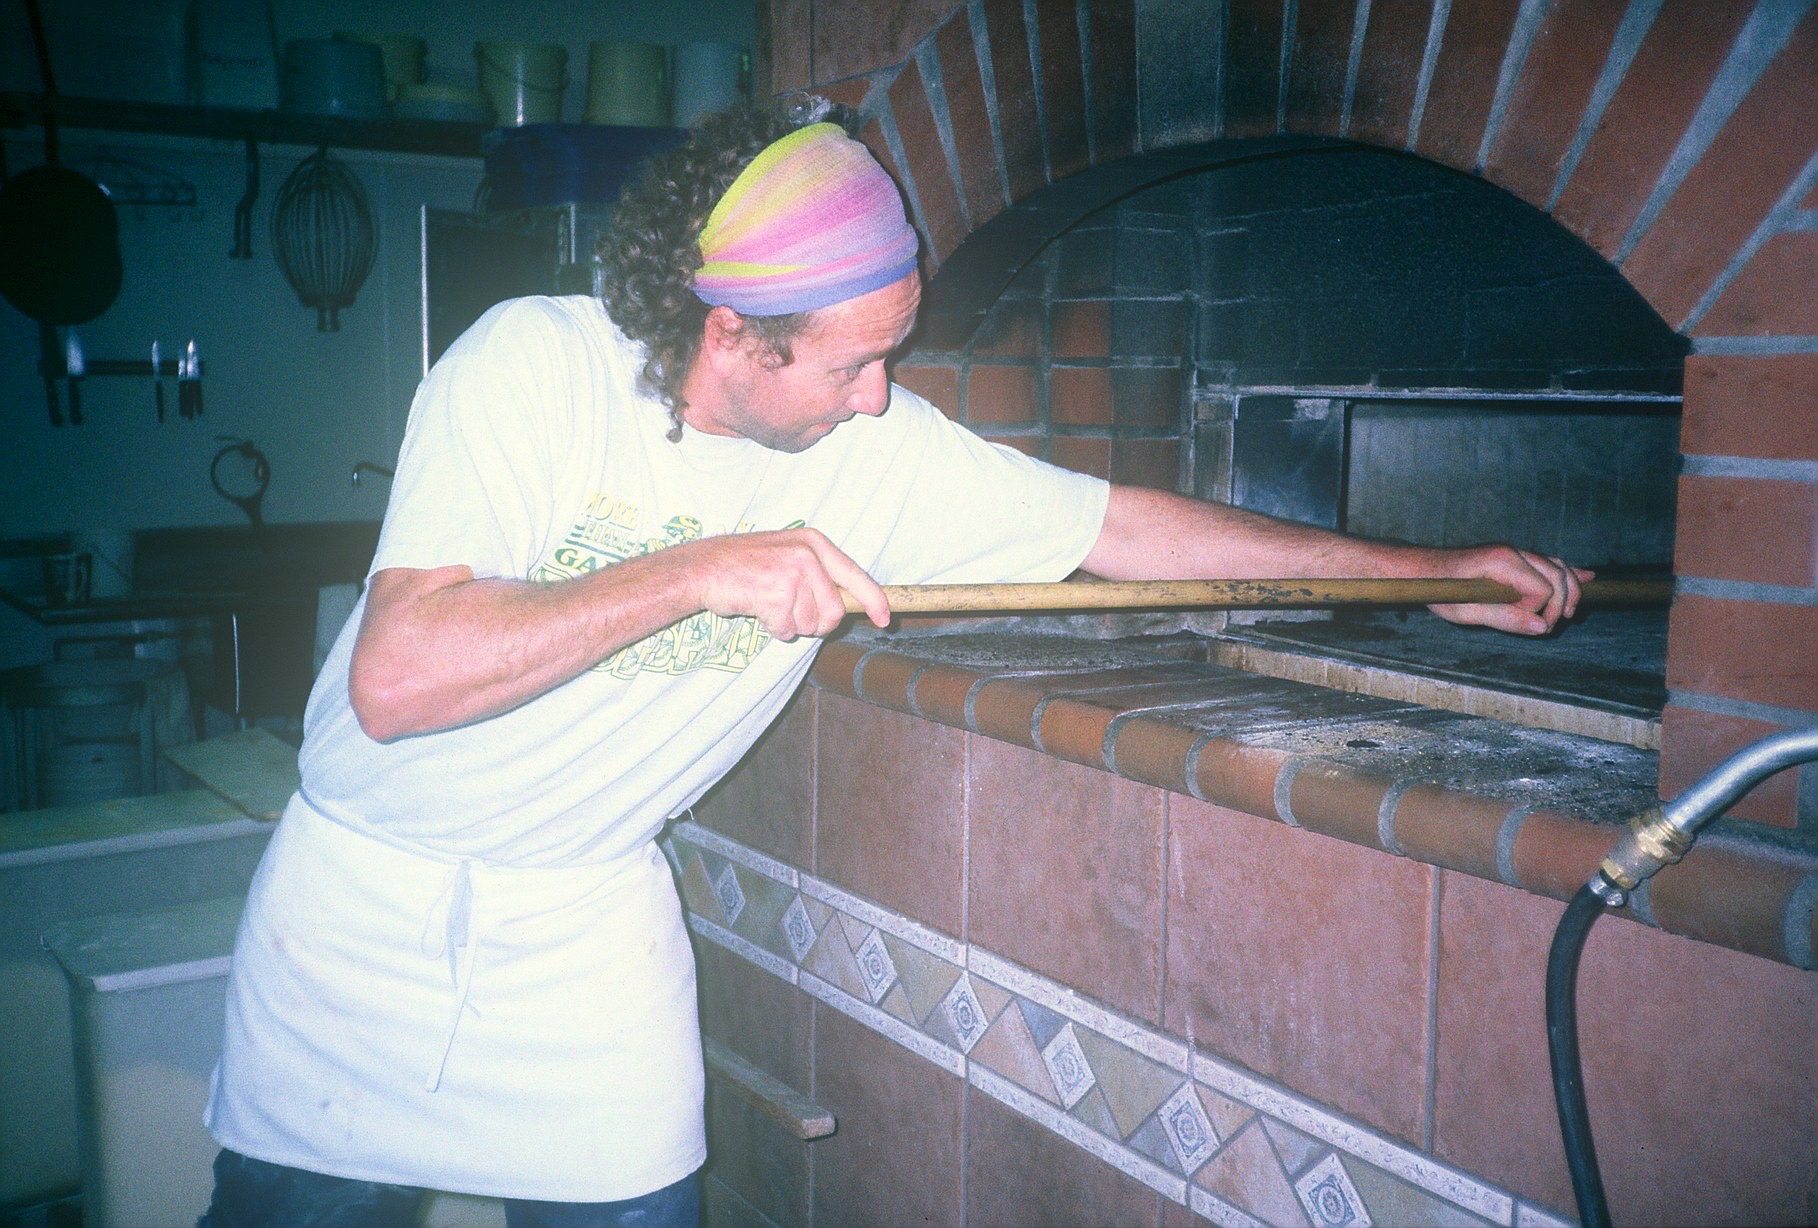 James baking at Tim Decker's Bakery - Bennett Valley Breads